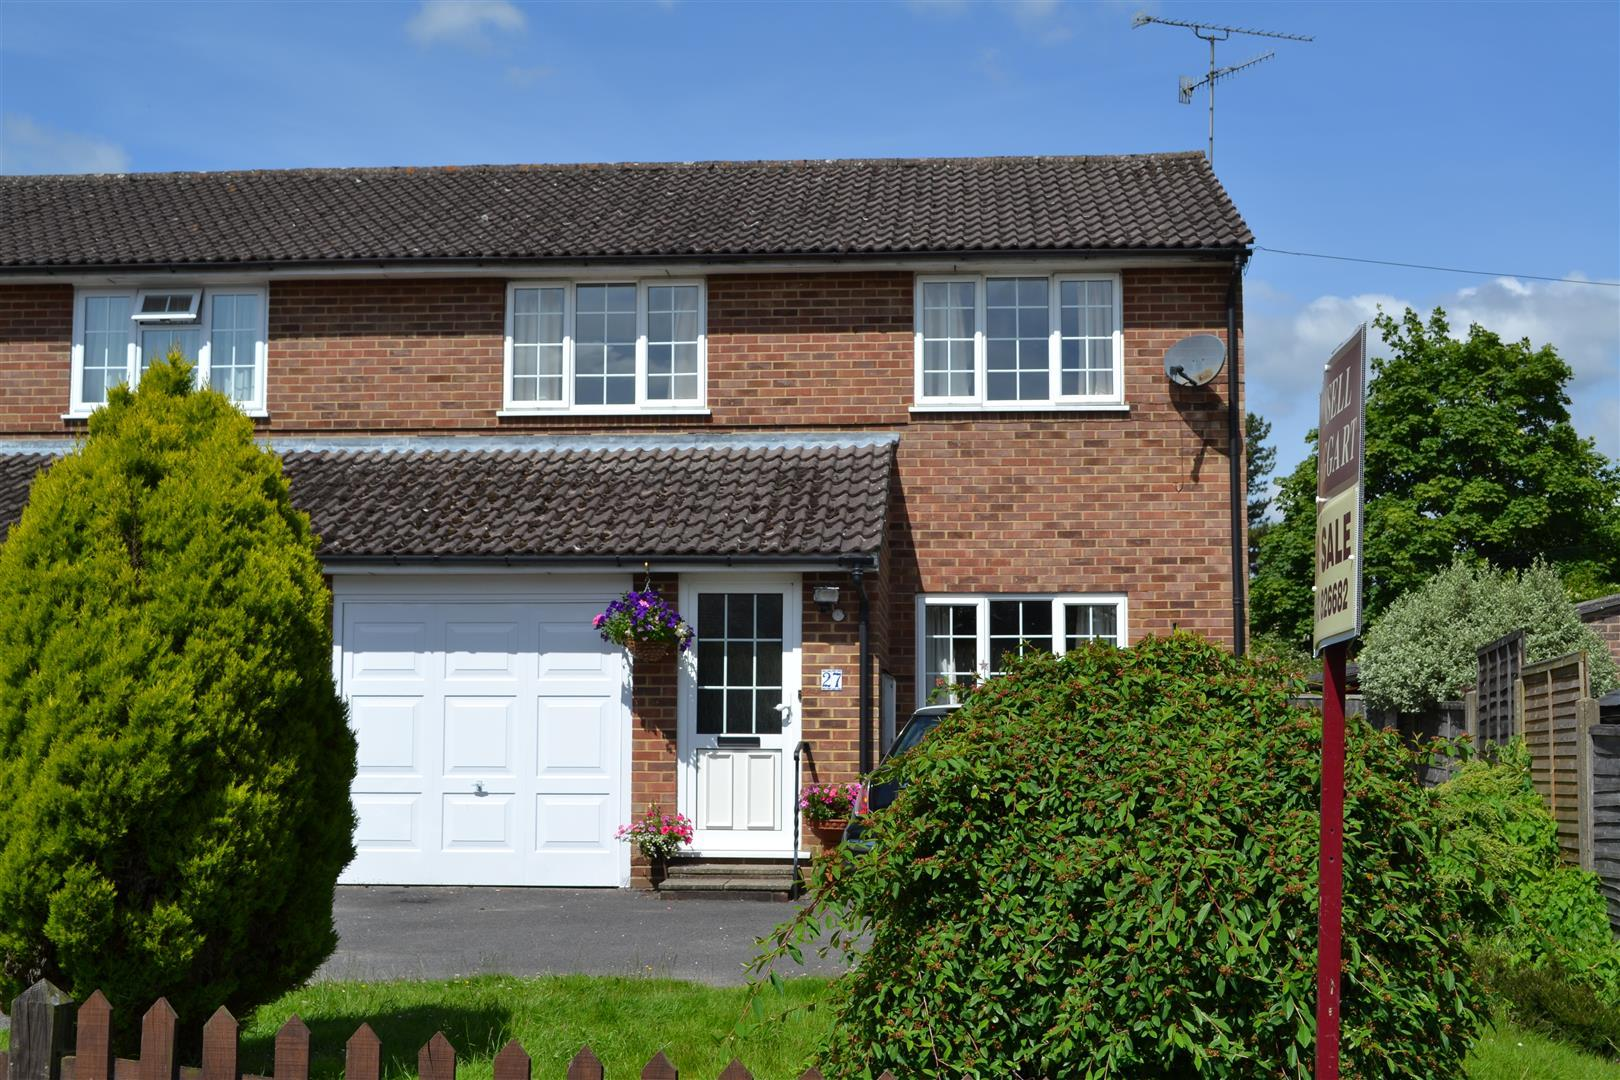 2 Bedroom Semi Detached House For Sale In Forest Row